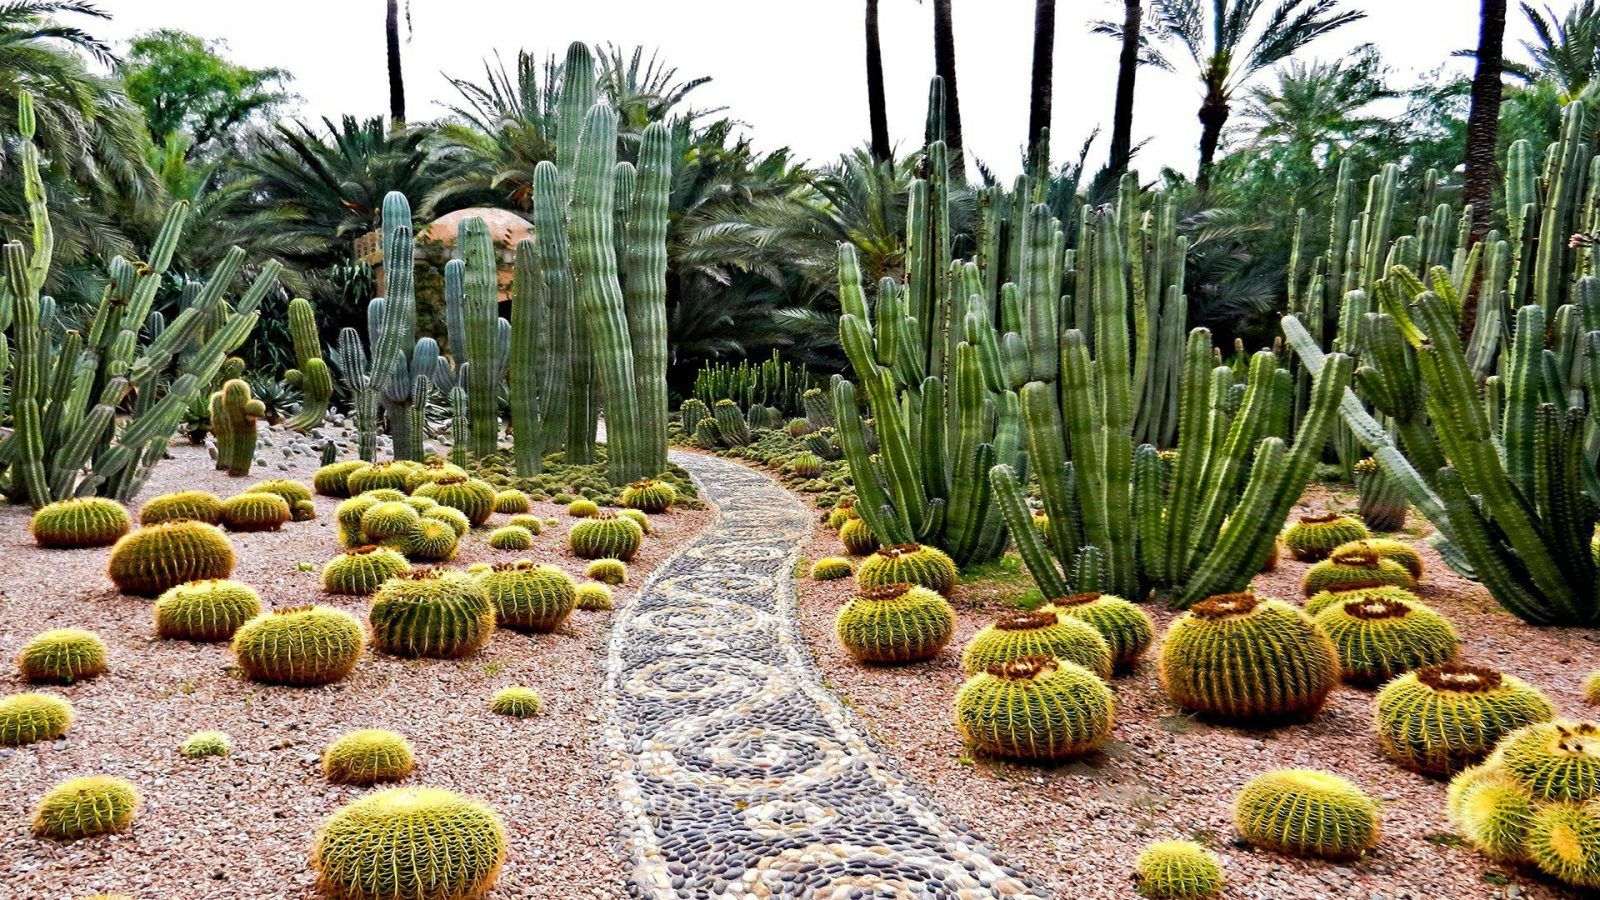 desert rose villa, marrakech (With images) Simple garden